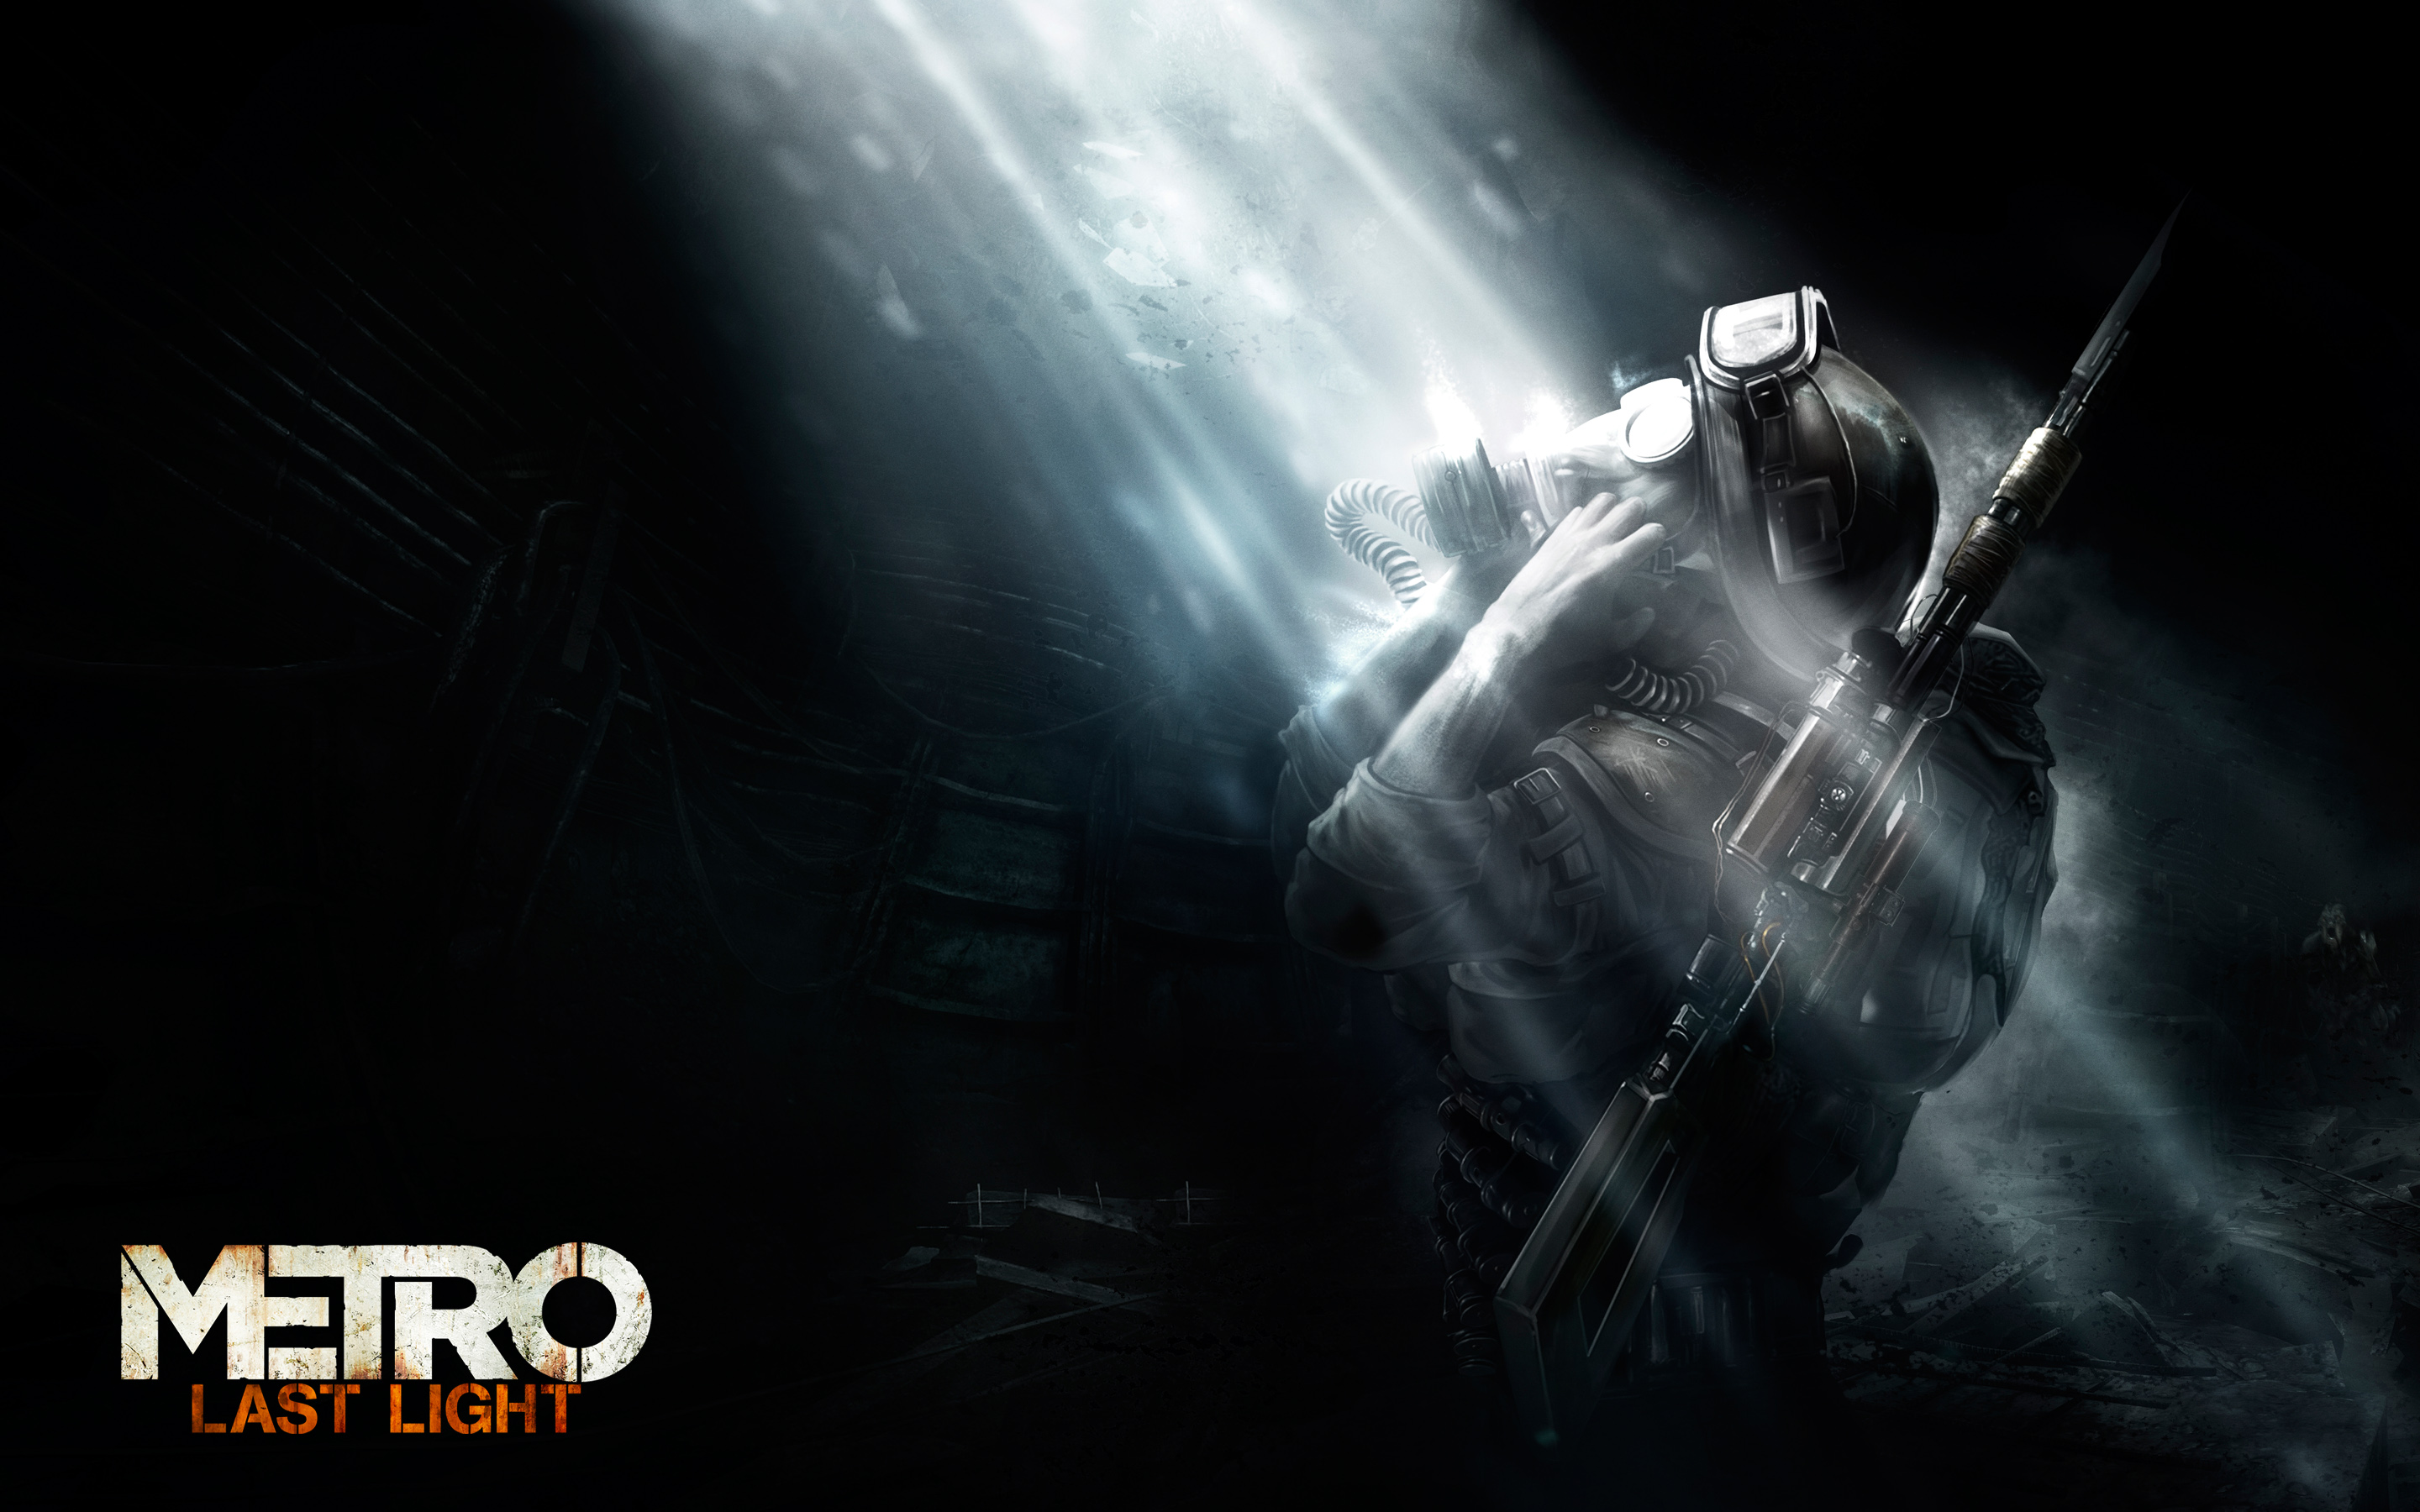 Metro Last Light 2013 Game